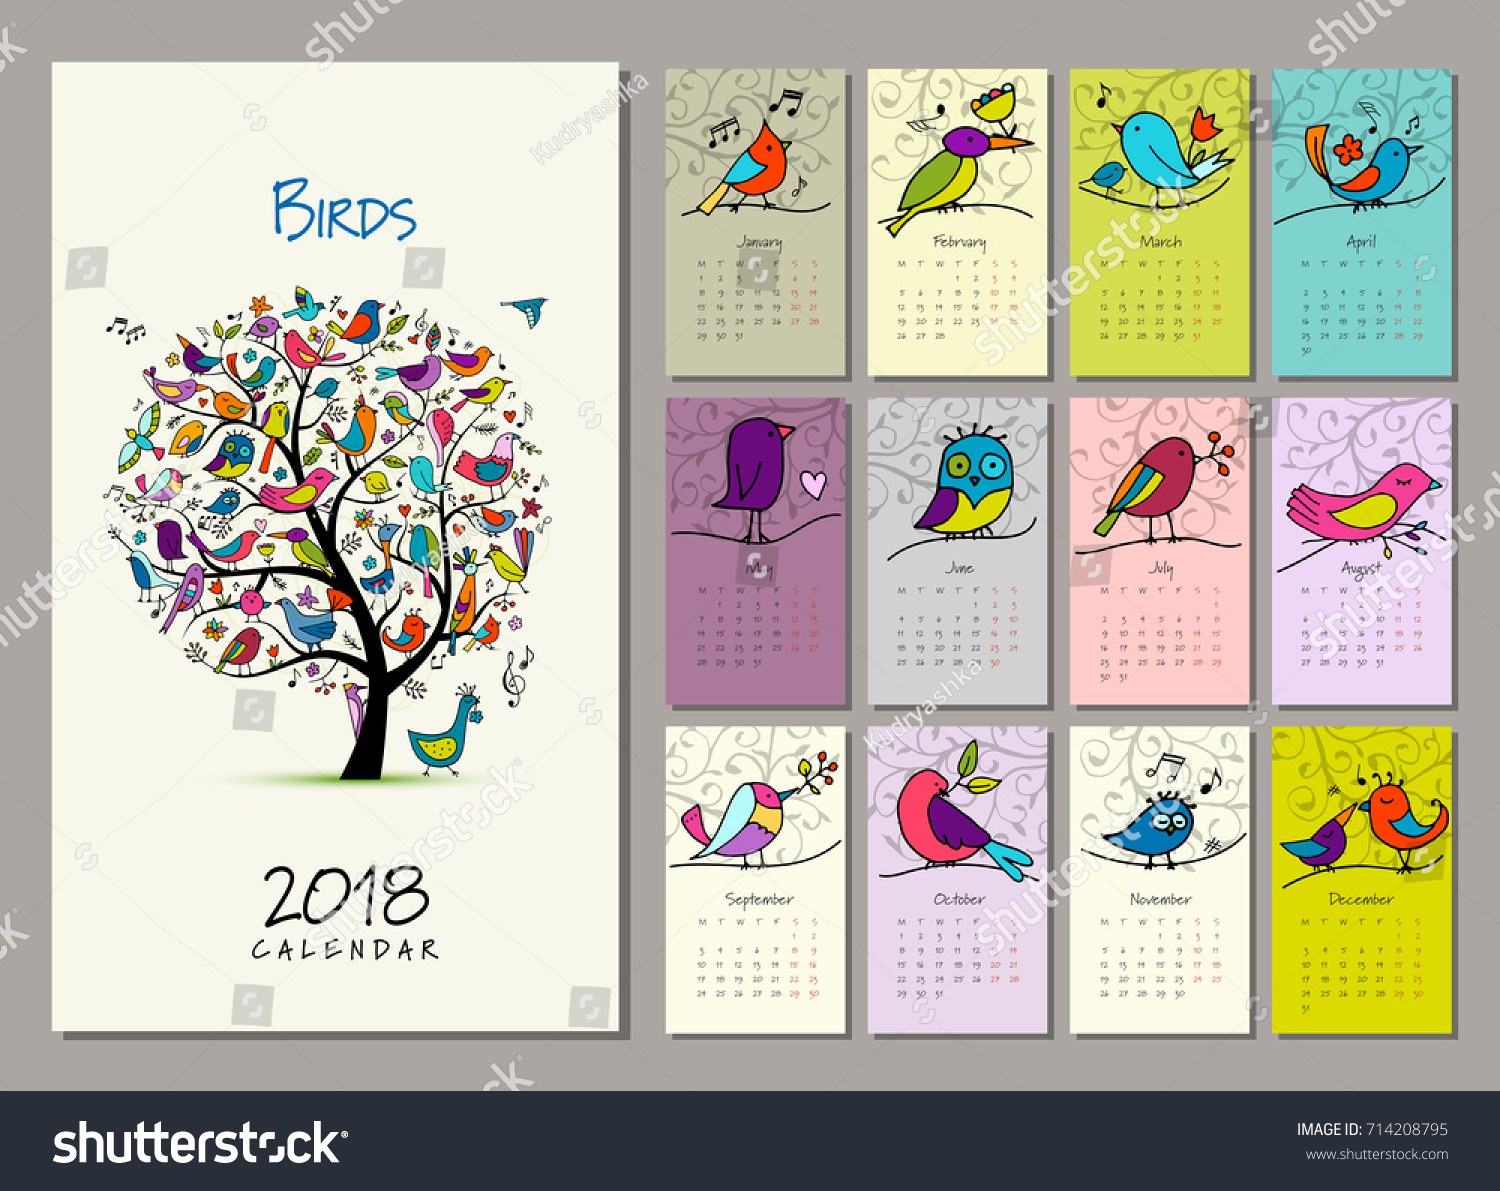 Calendar Design Free Vector : Birds tree calendar design vector stock